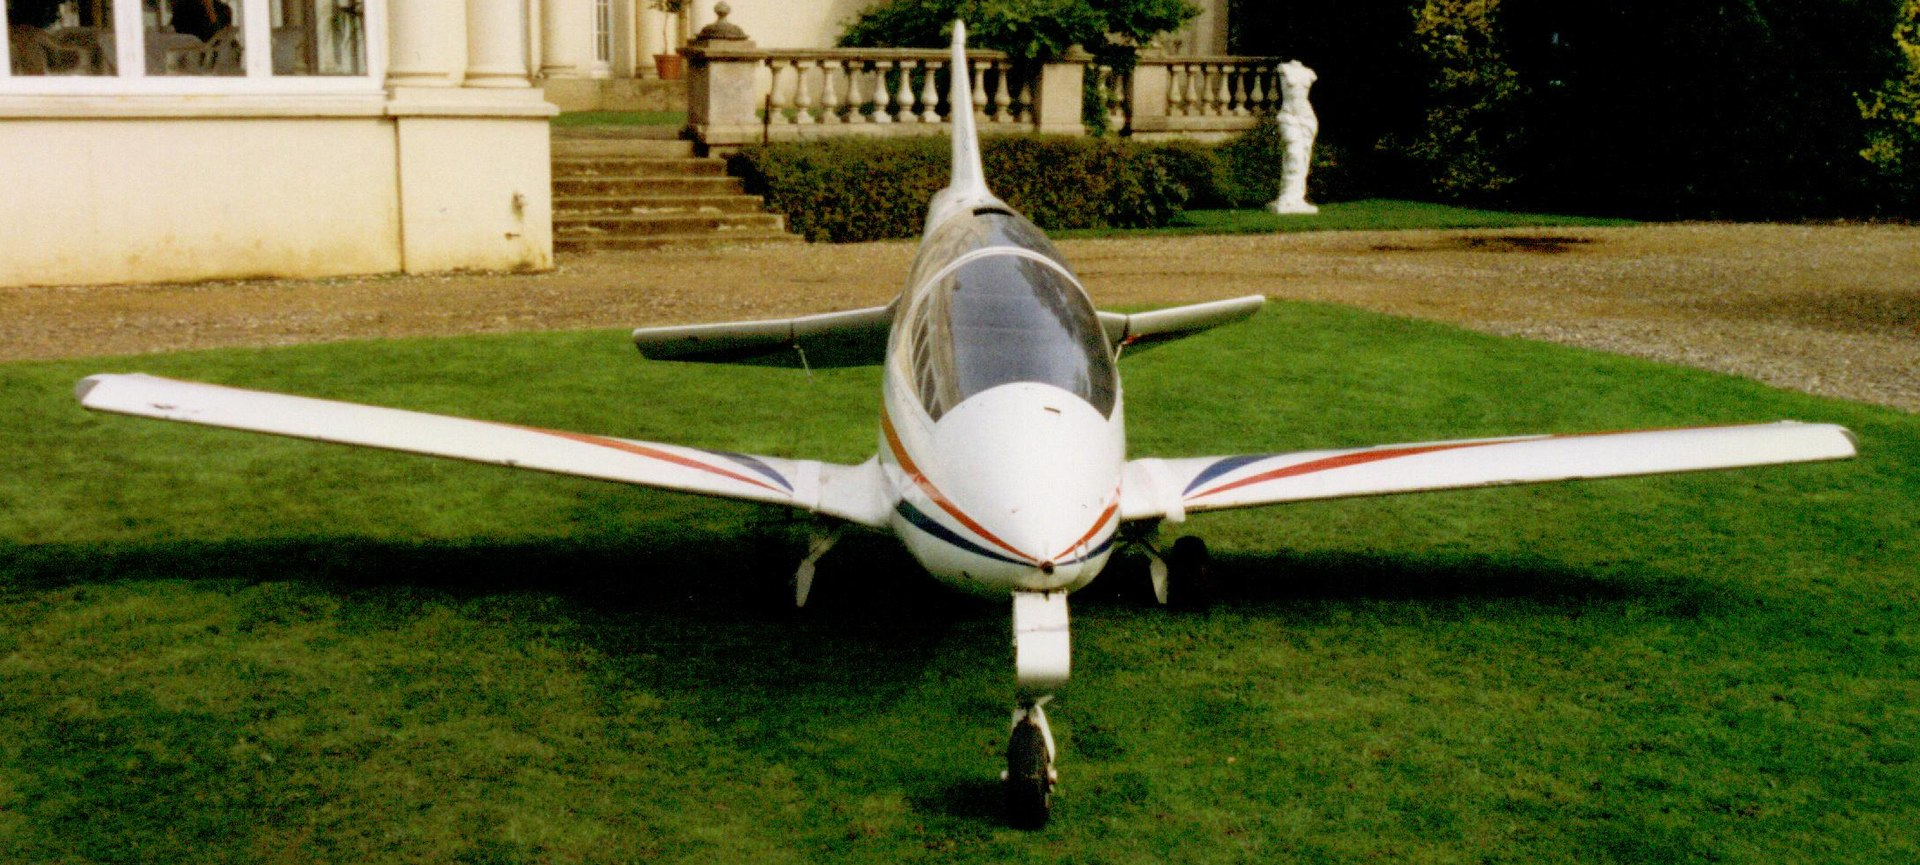 Acrostar, a small white plane with wings that fold up.